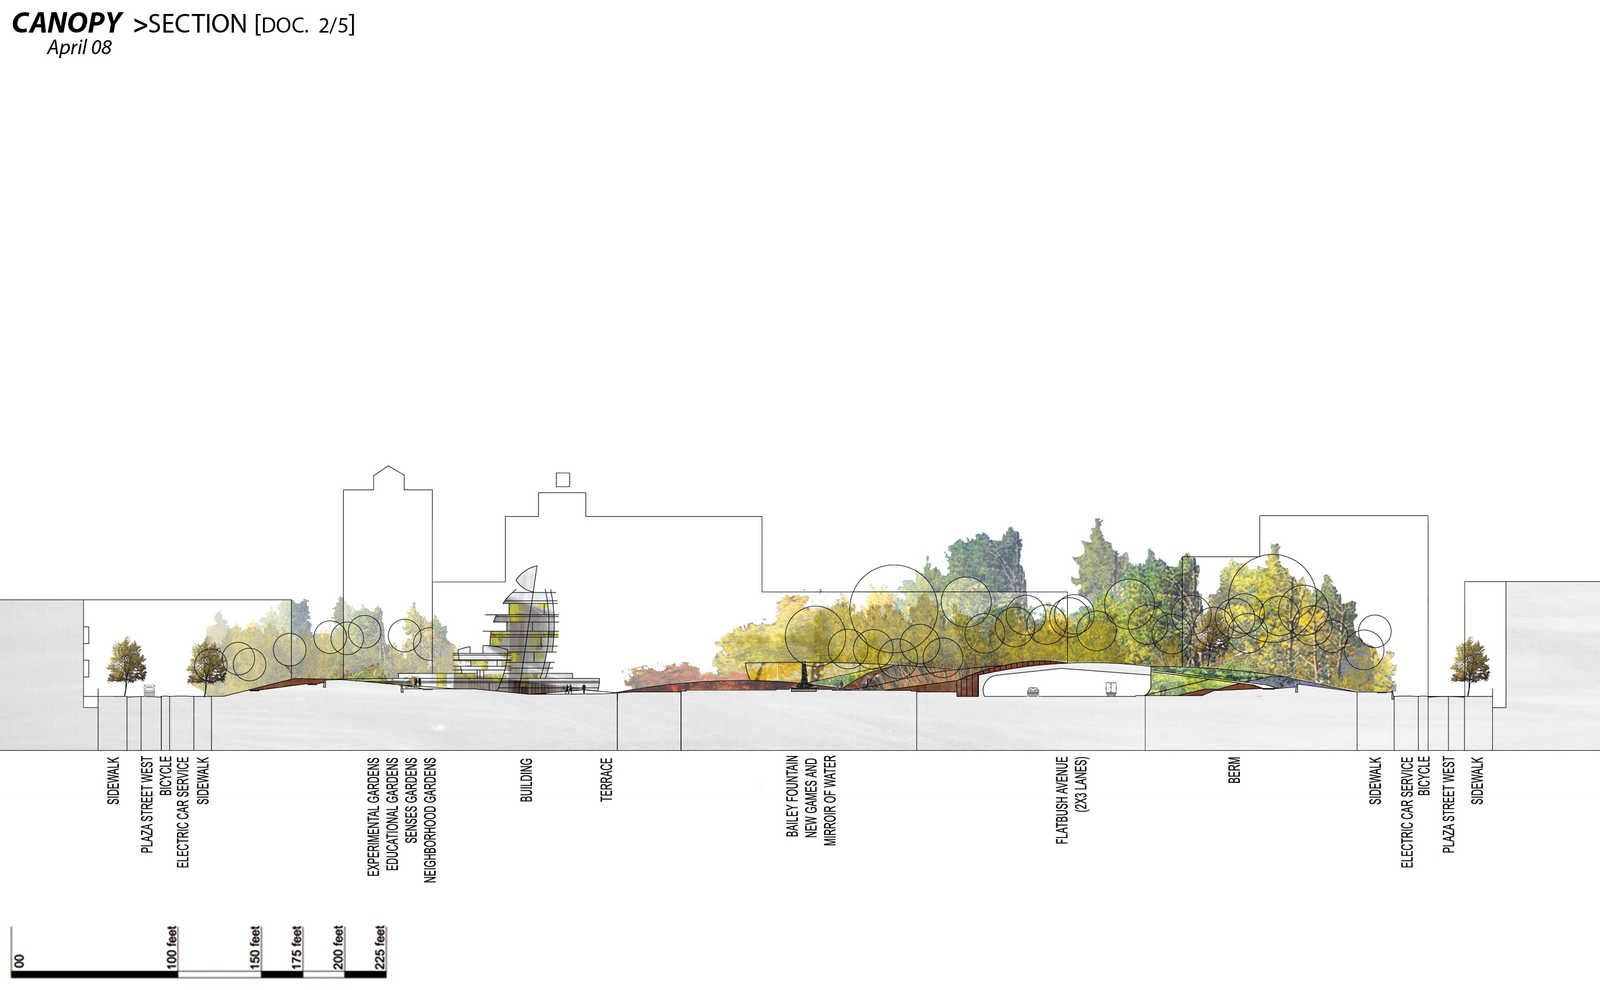 Landscape Architecture Section Drawings reinventing grand army plaza: people's choice | canopy | garden